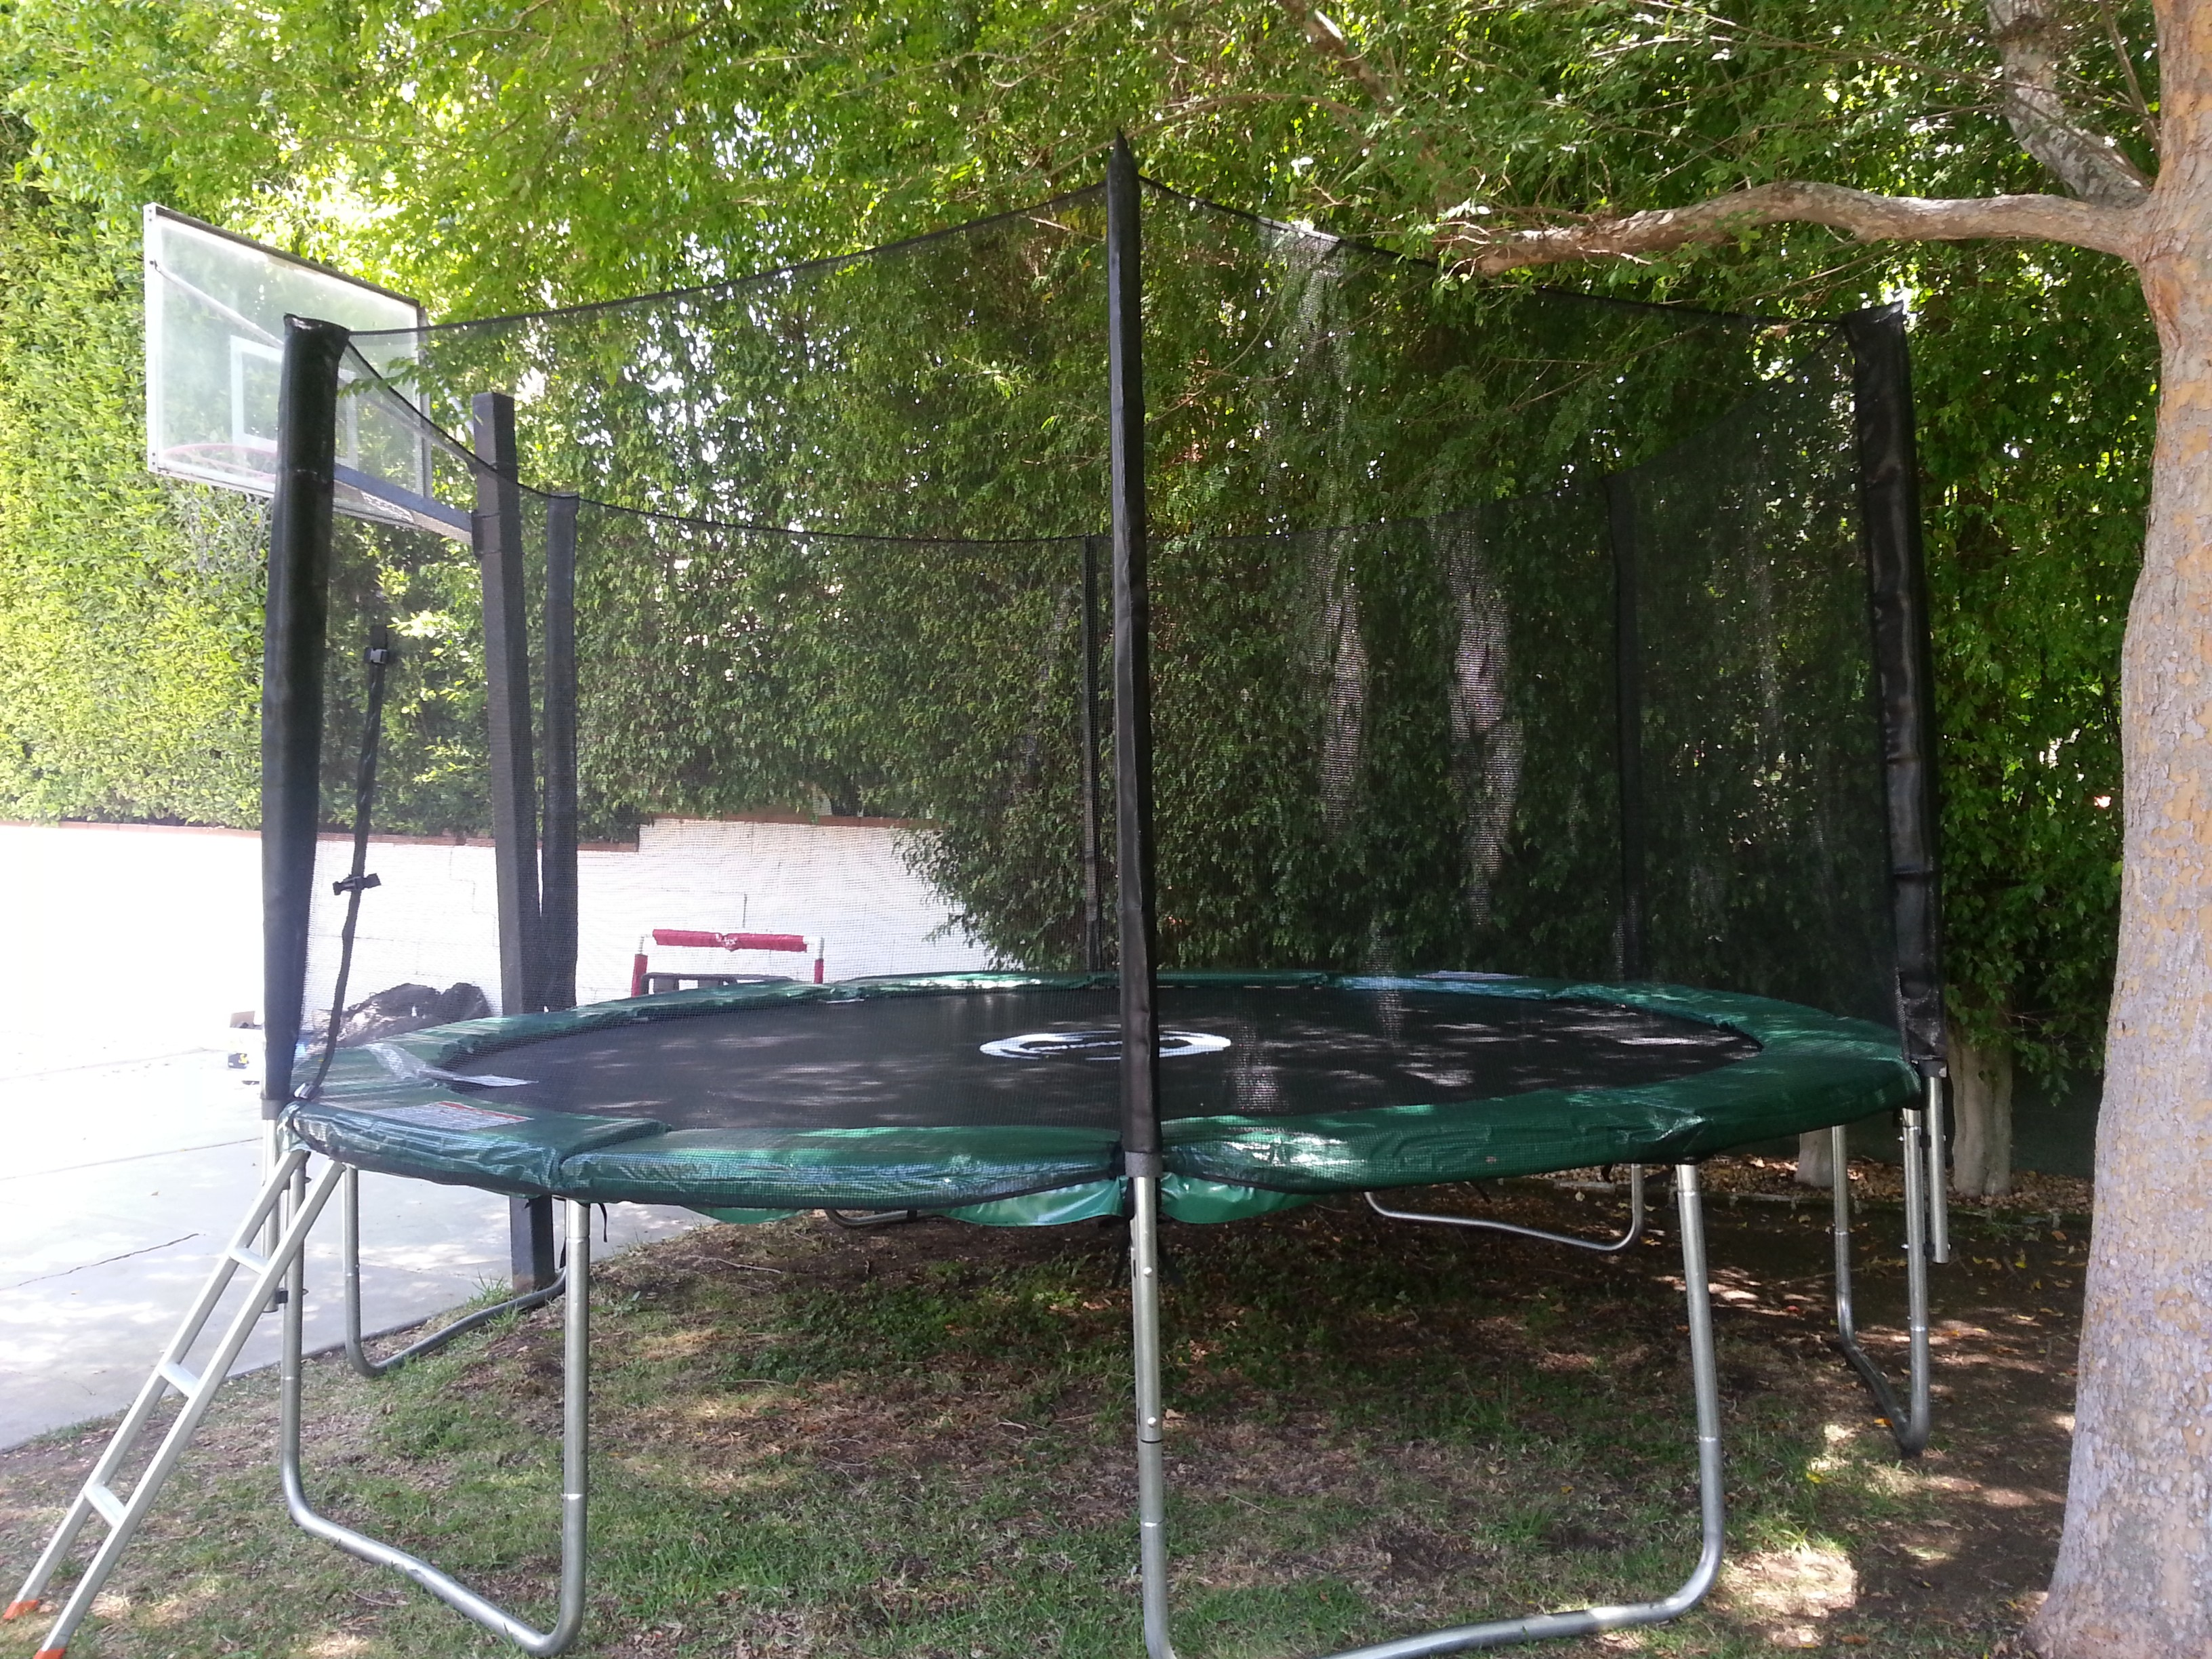 14 Foot Infinity Bounce Trampoline Combo